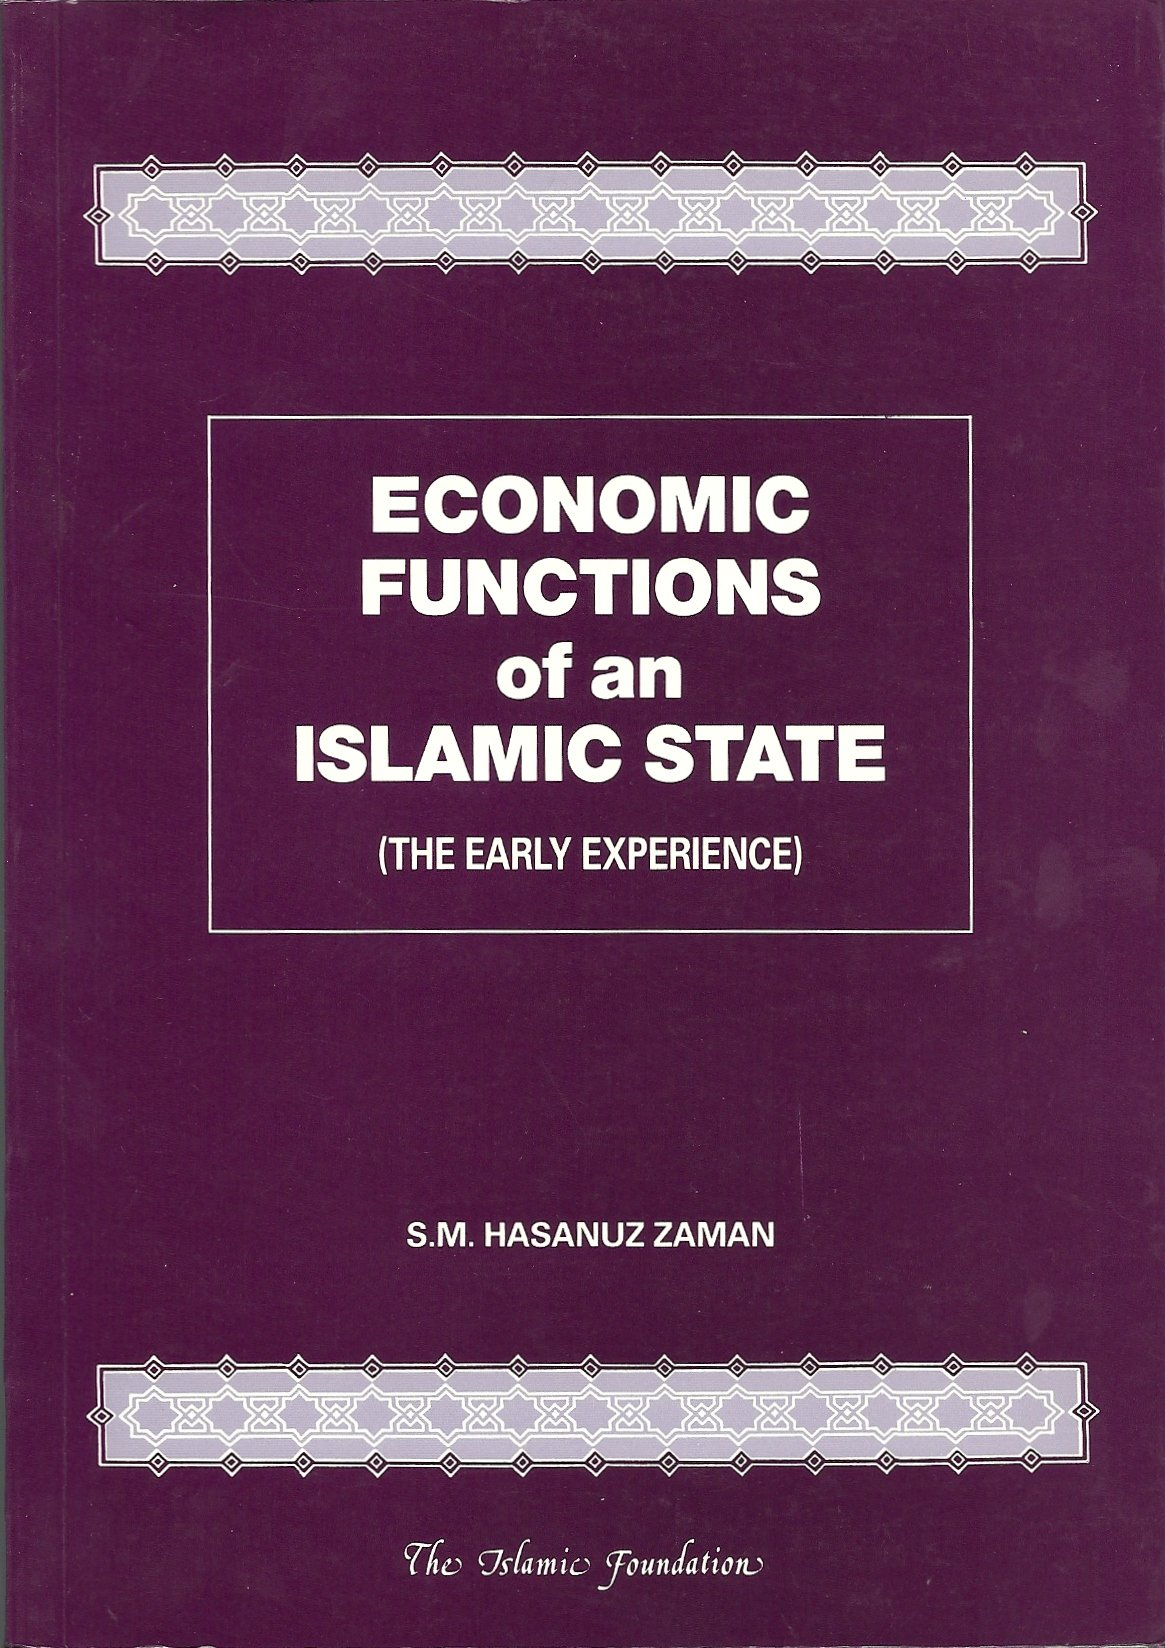 The economic functions of the state